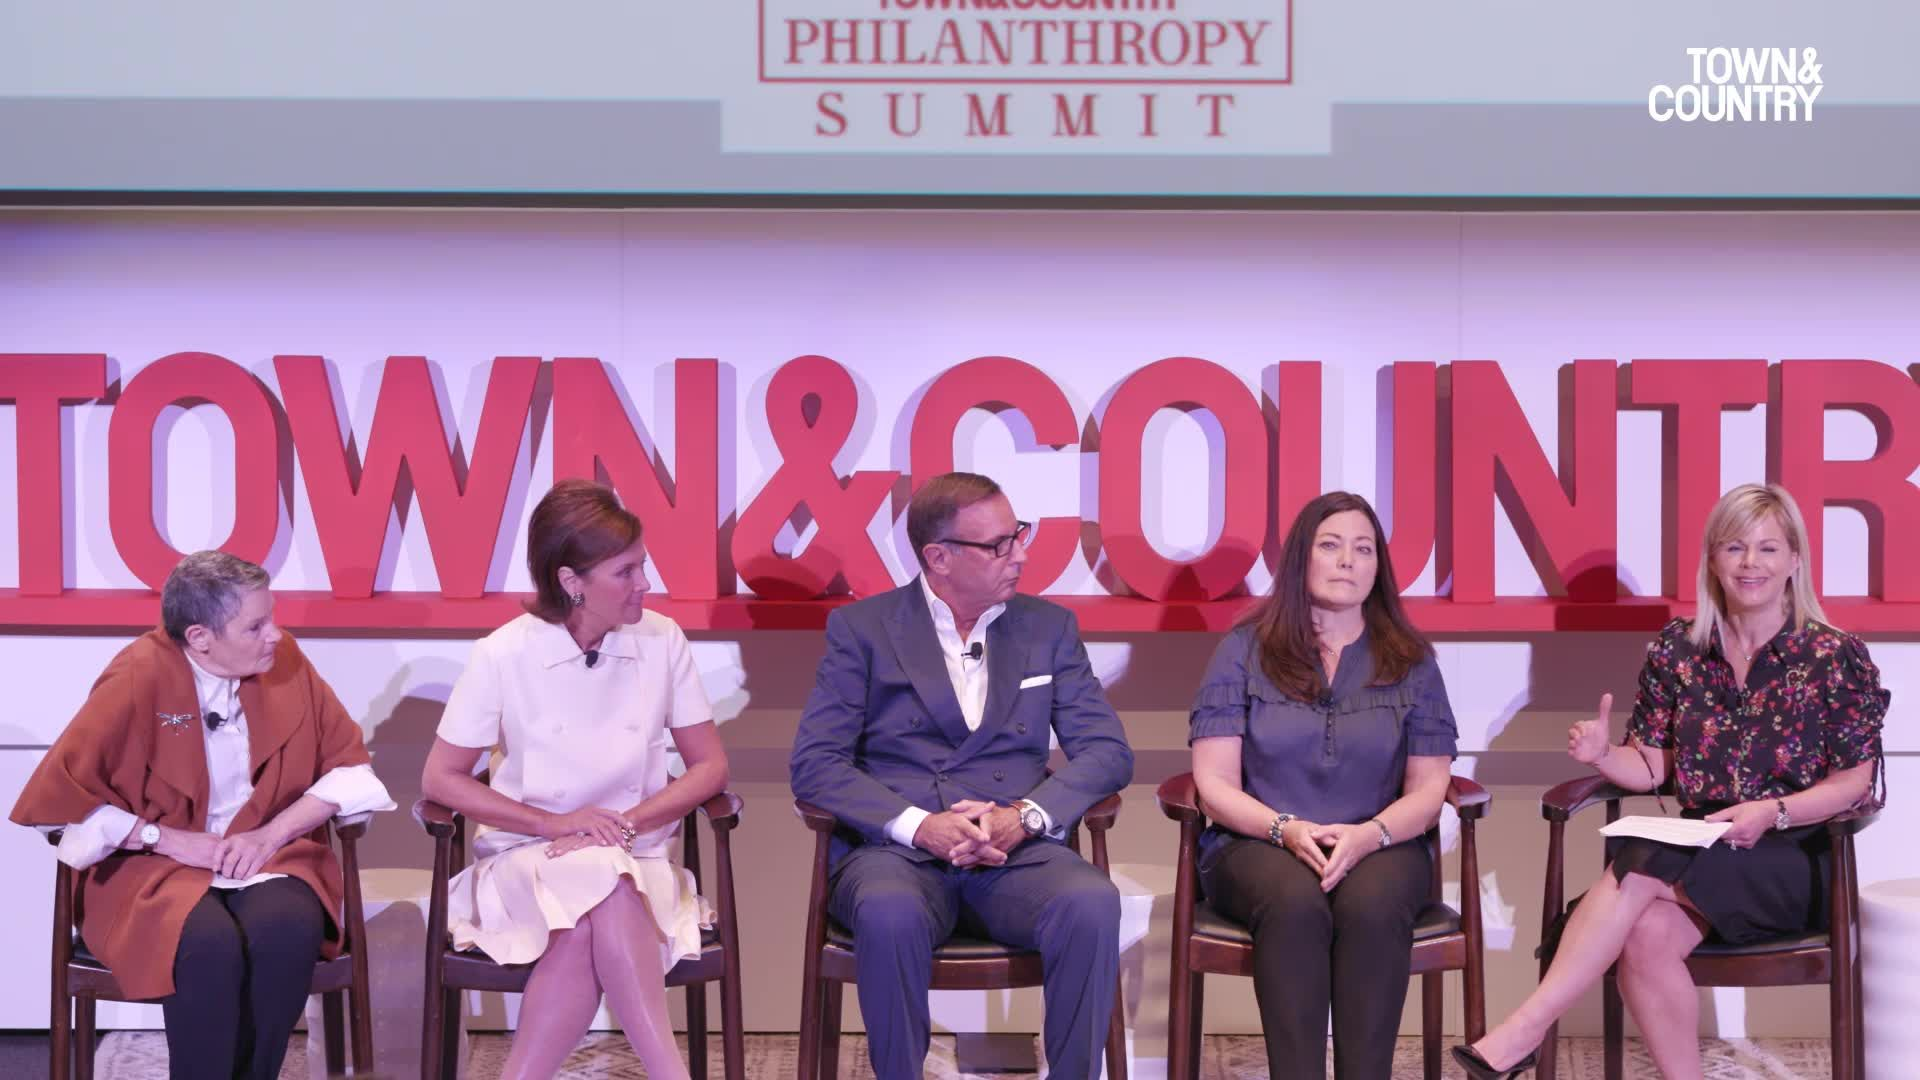 The Parents Crusade: When Philanthropy Is Informed By Your Own Family